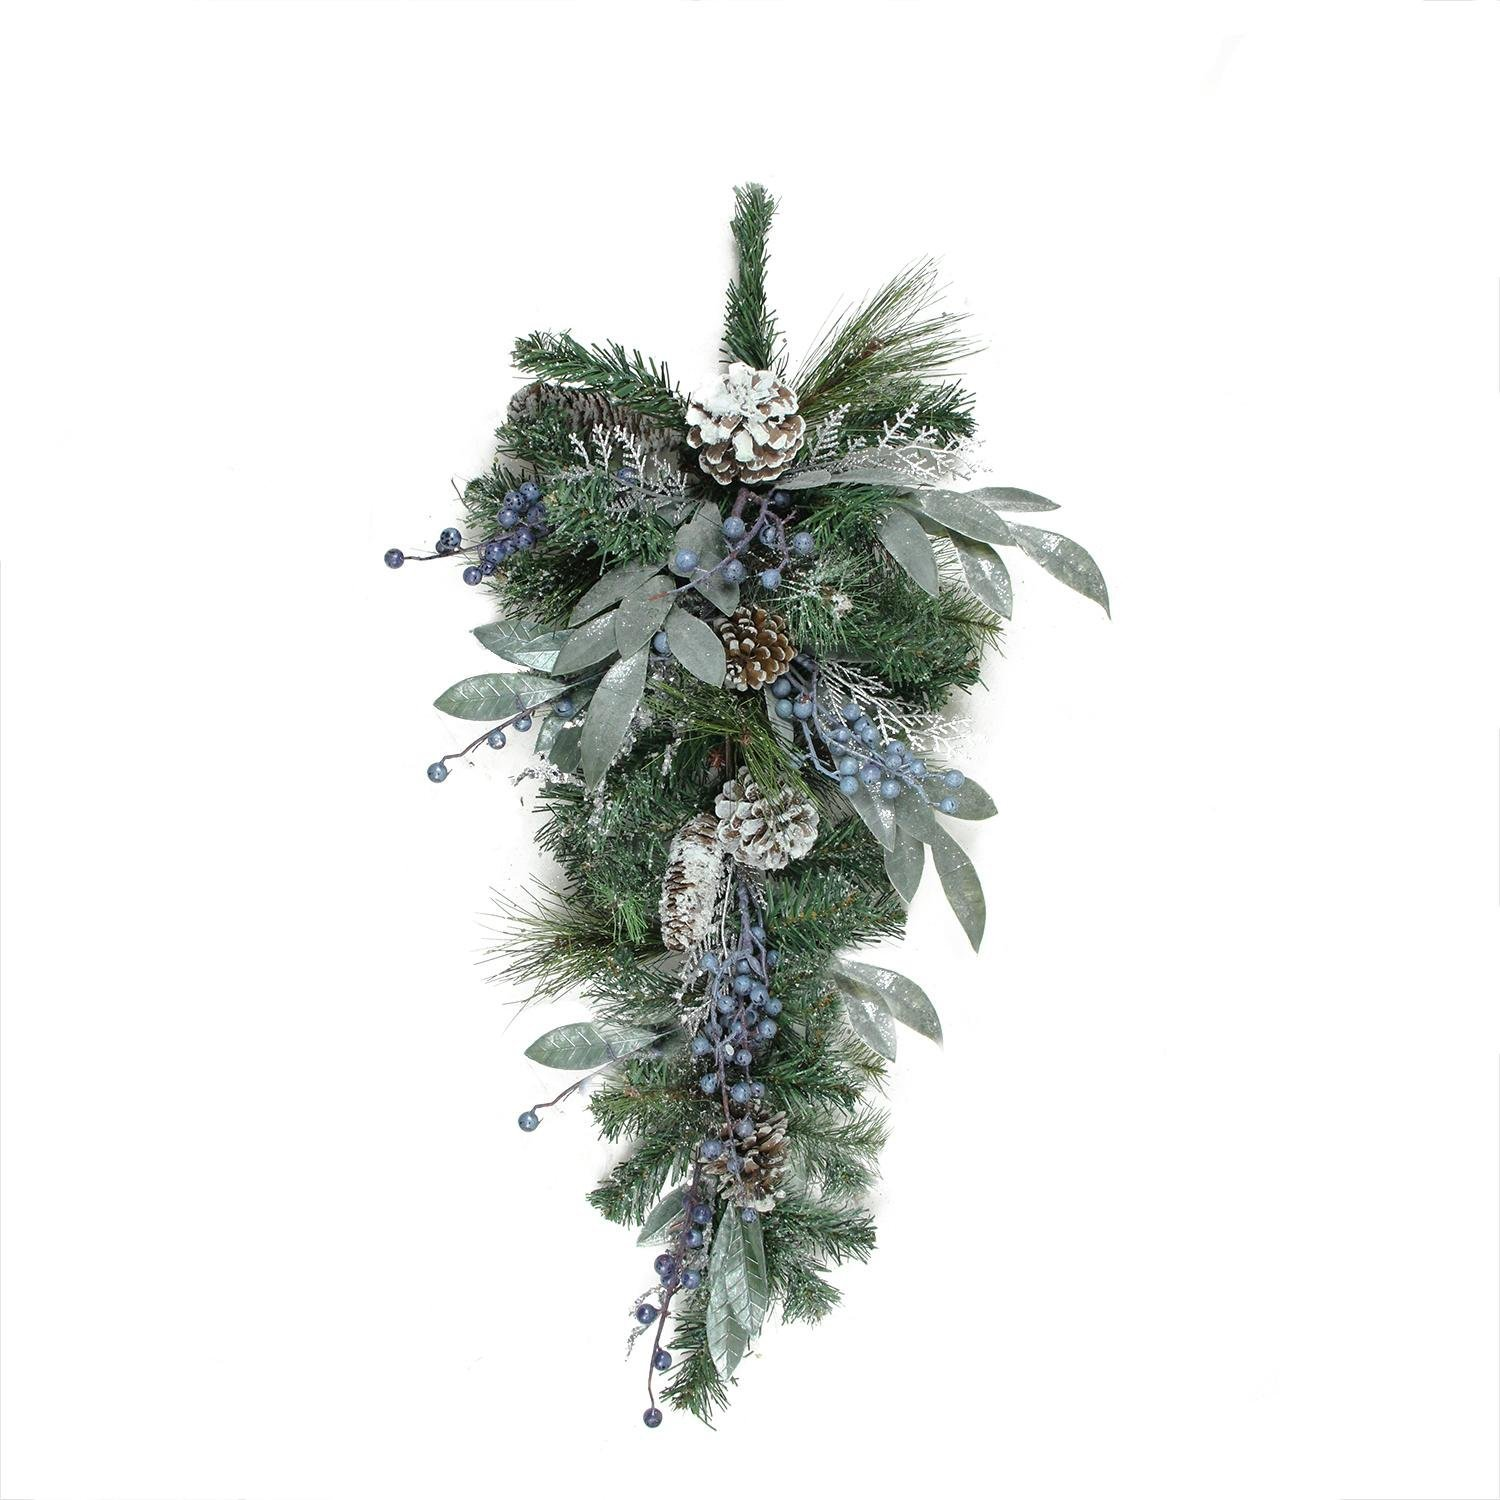 Northlight Mixed Berries and Snowy Pine Cones Artificial Christmas Teardrop Swag-Unlit, 28'', Blue